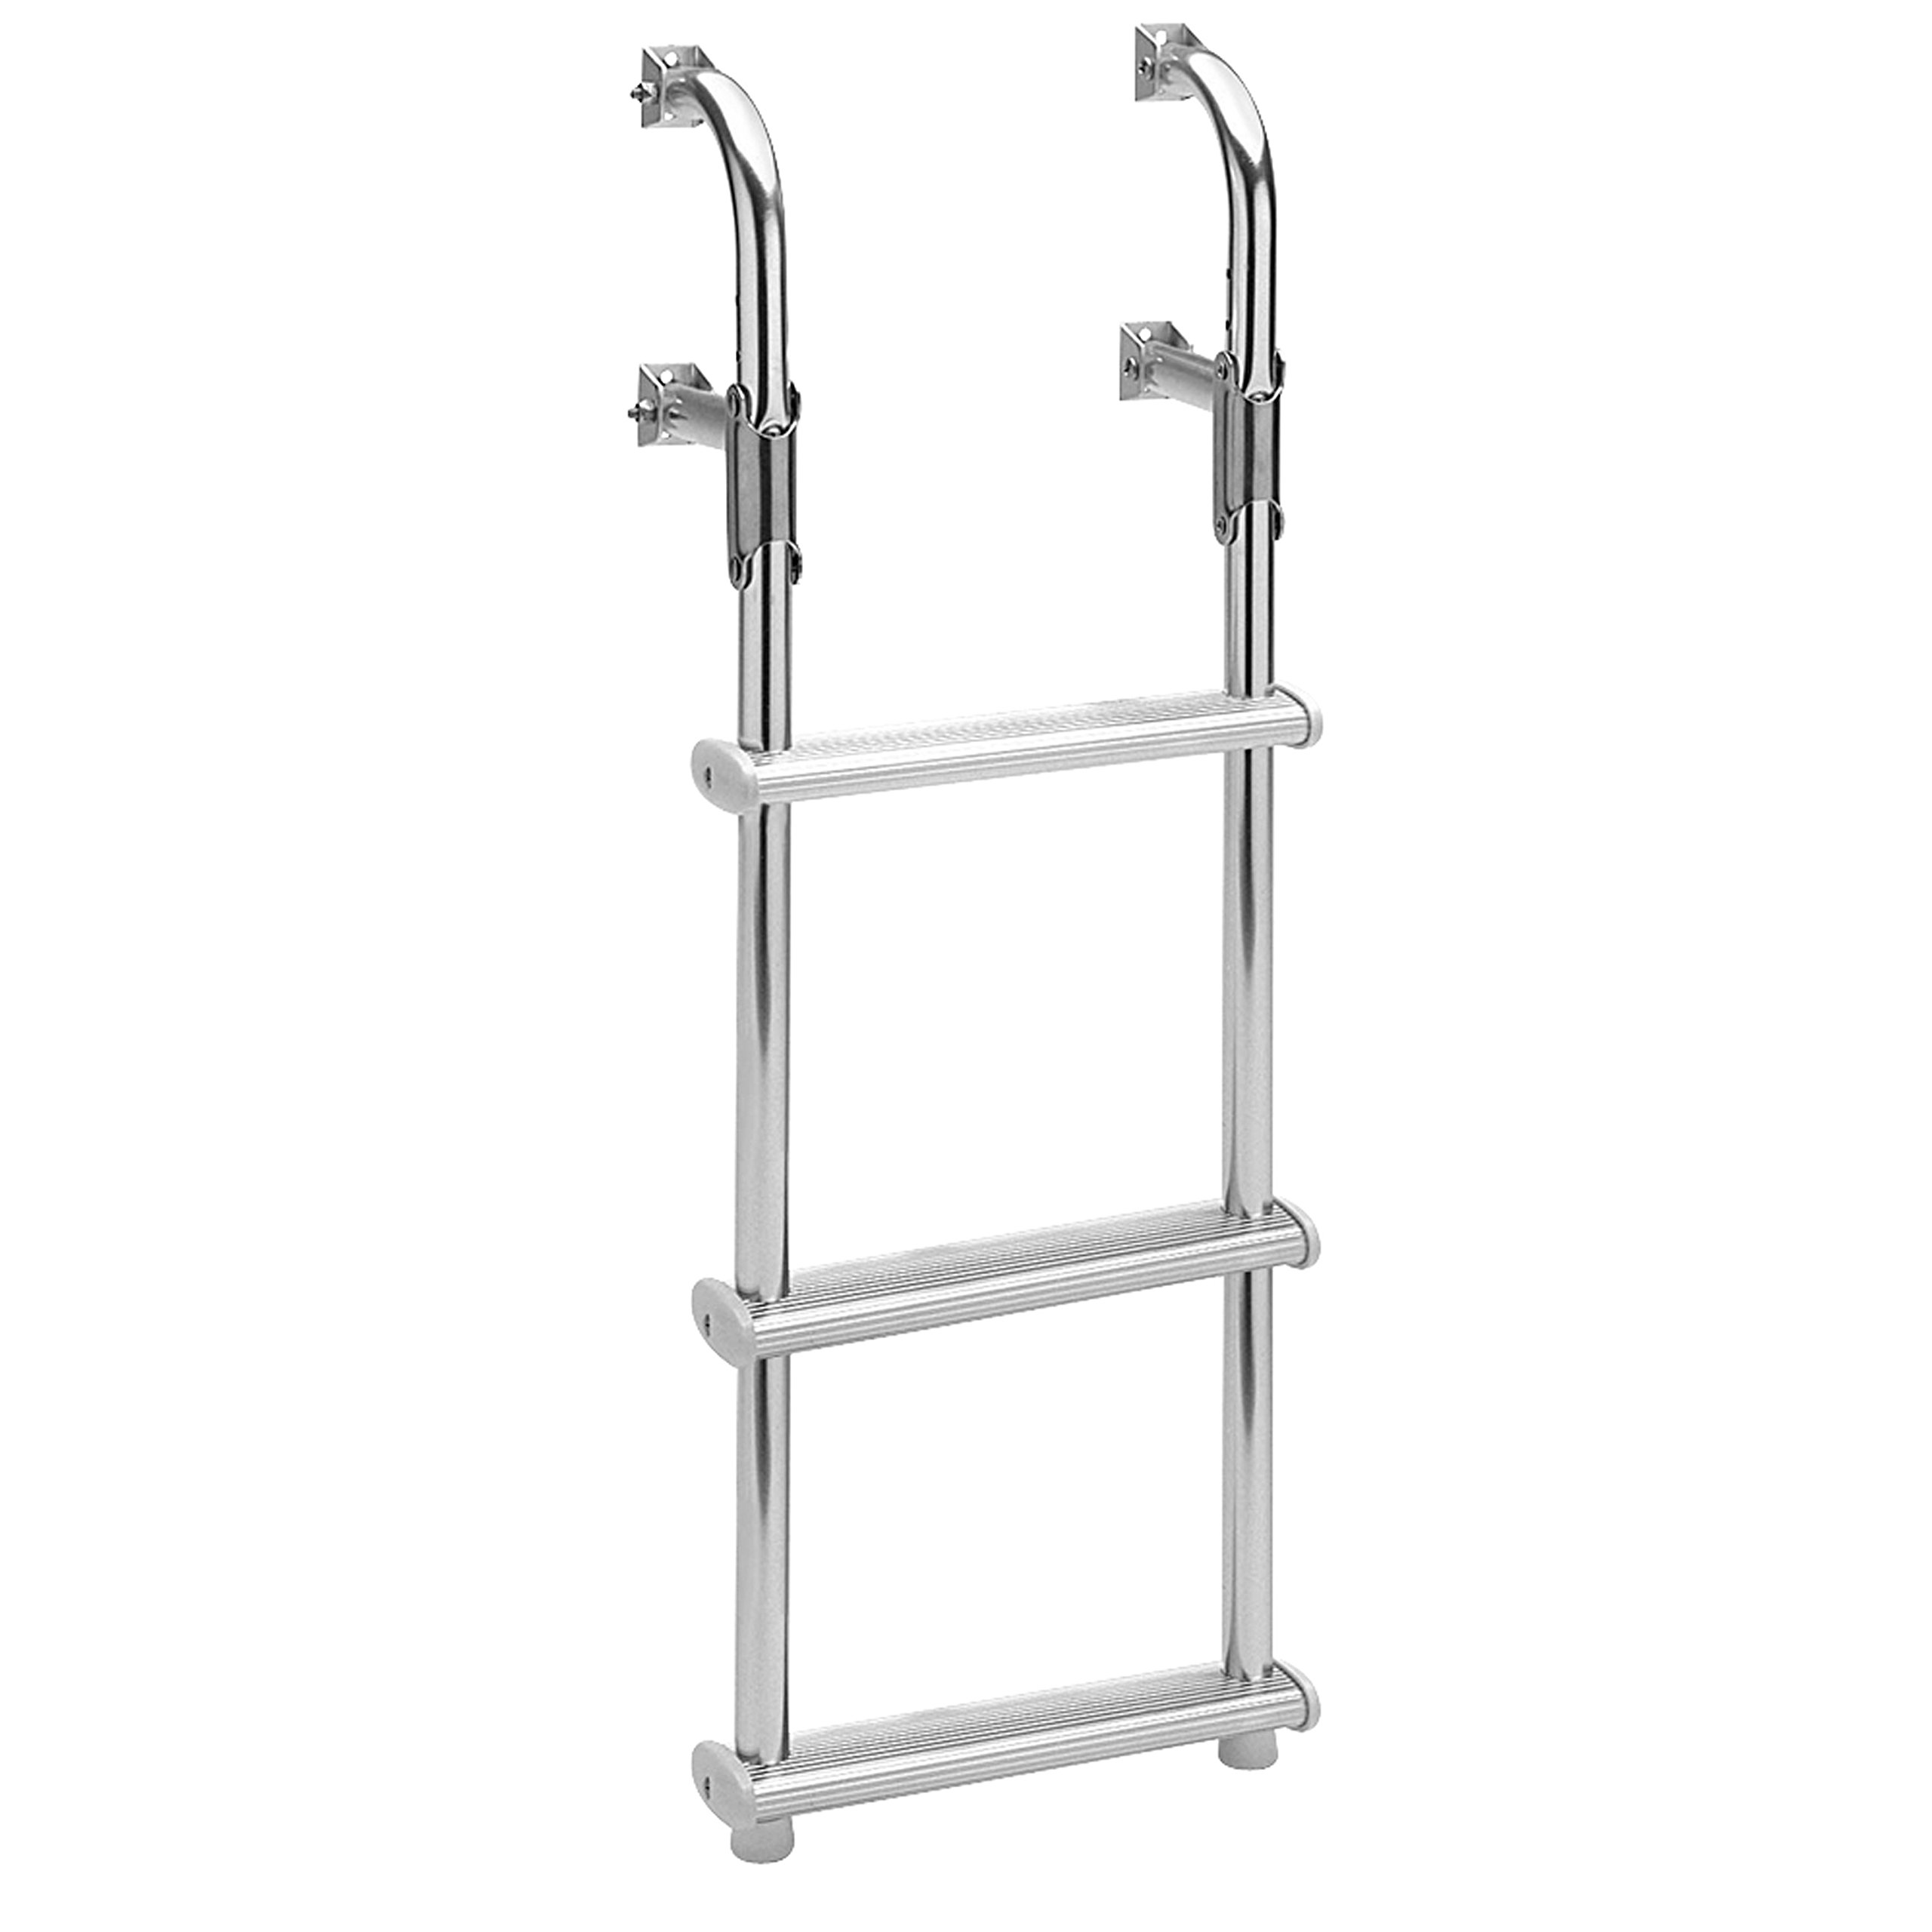 Garelick/EEz-In 18018:01 Marine Compact Transom Ladder – 3 Step